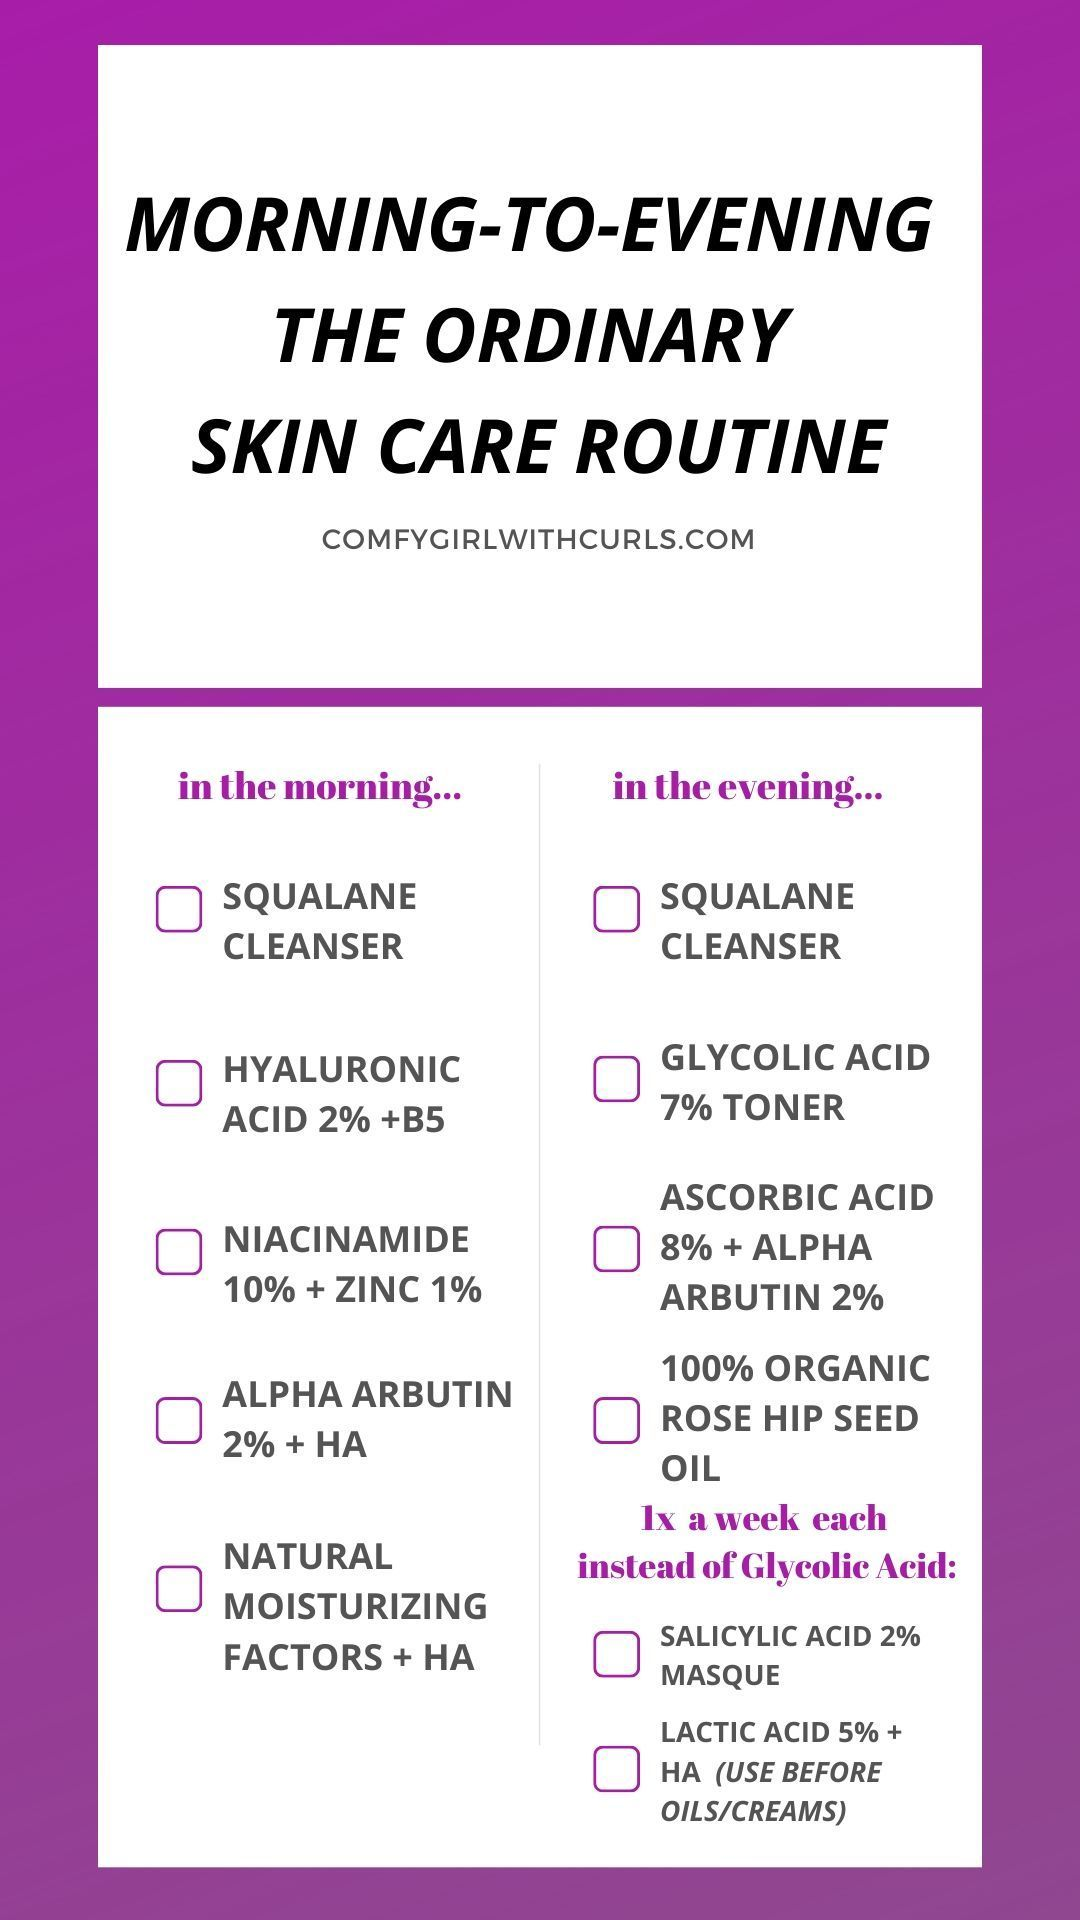 Morning To Evening Cheat Sheet The Ordinary Skin Care Regimen For Acne Prone Brown Skin See The Step In 2020 Skin Care Acne Acne Prone Skin Morning Skin Care Routine